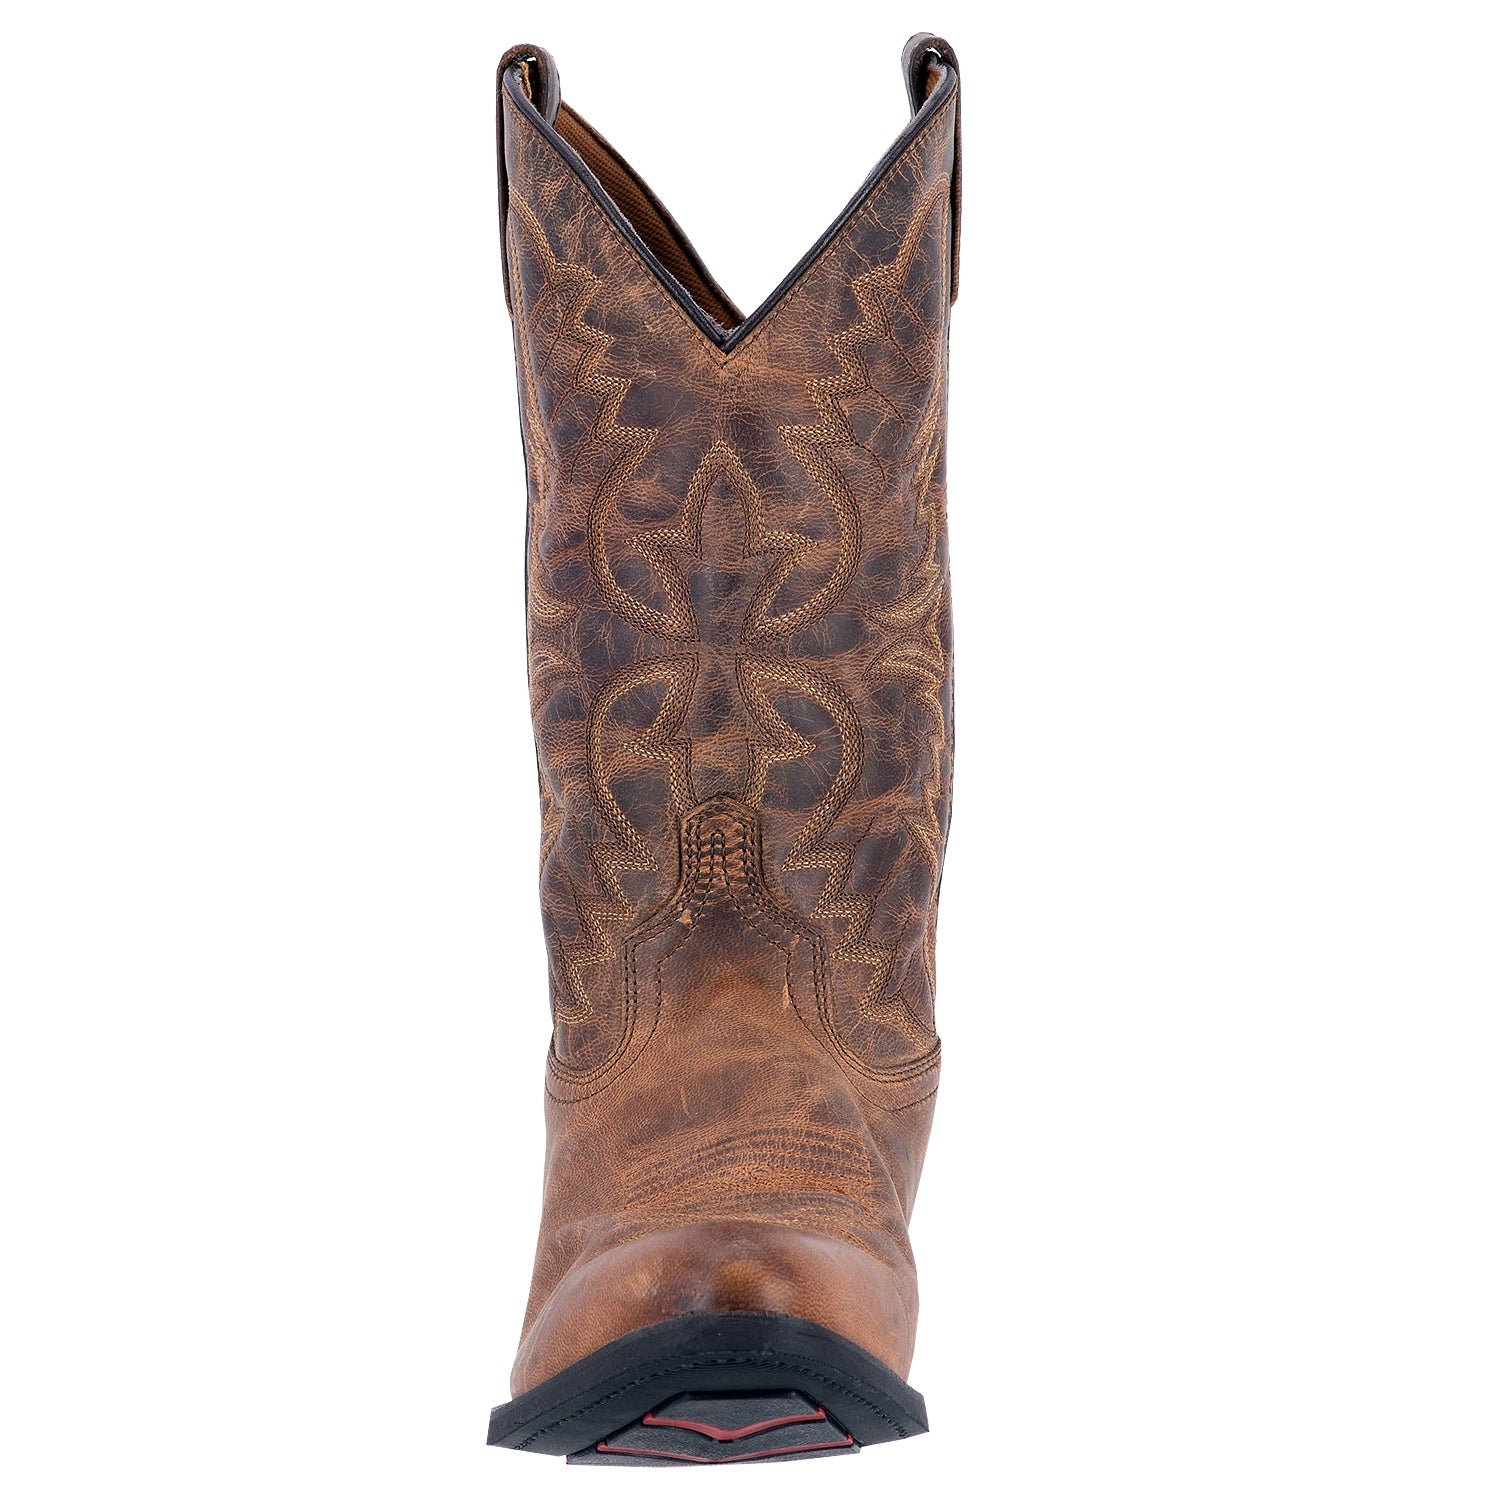 BIRCHWOOD LEATHER BOOT 4410064437290